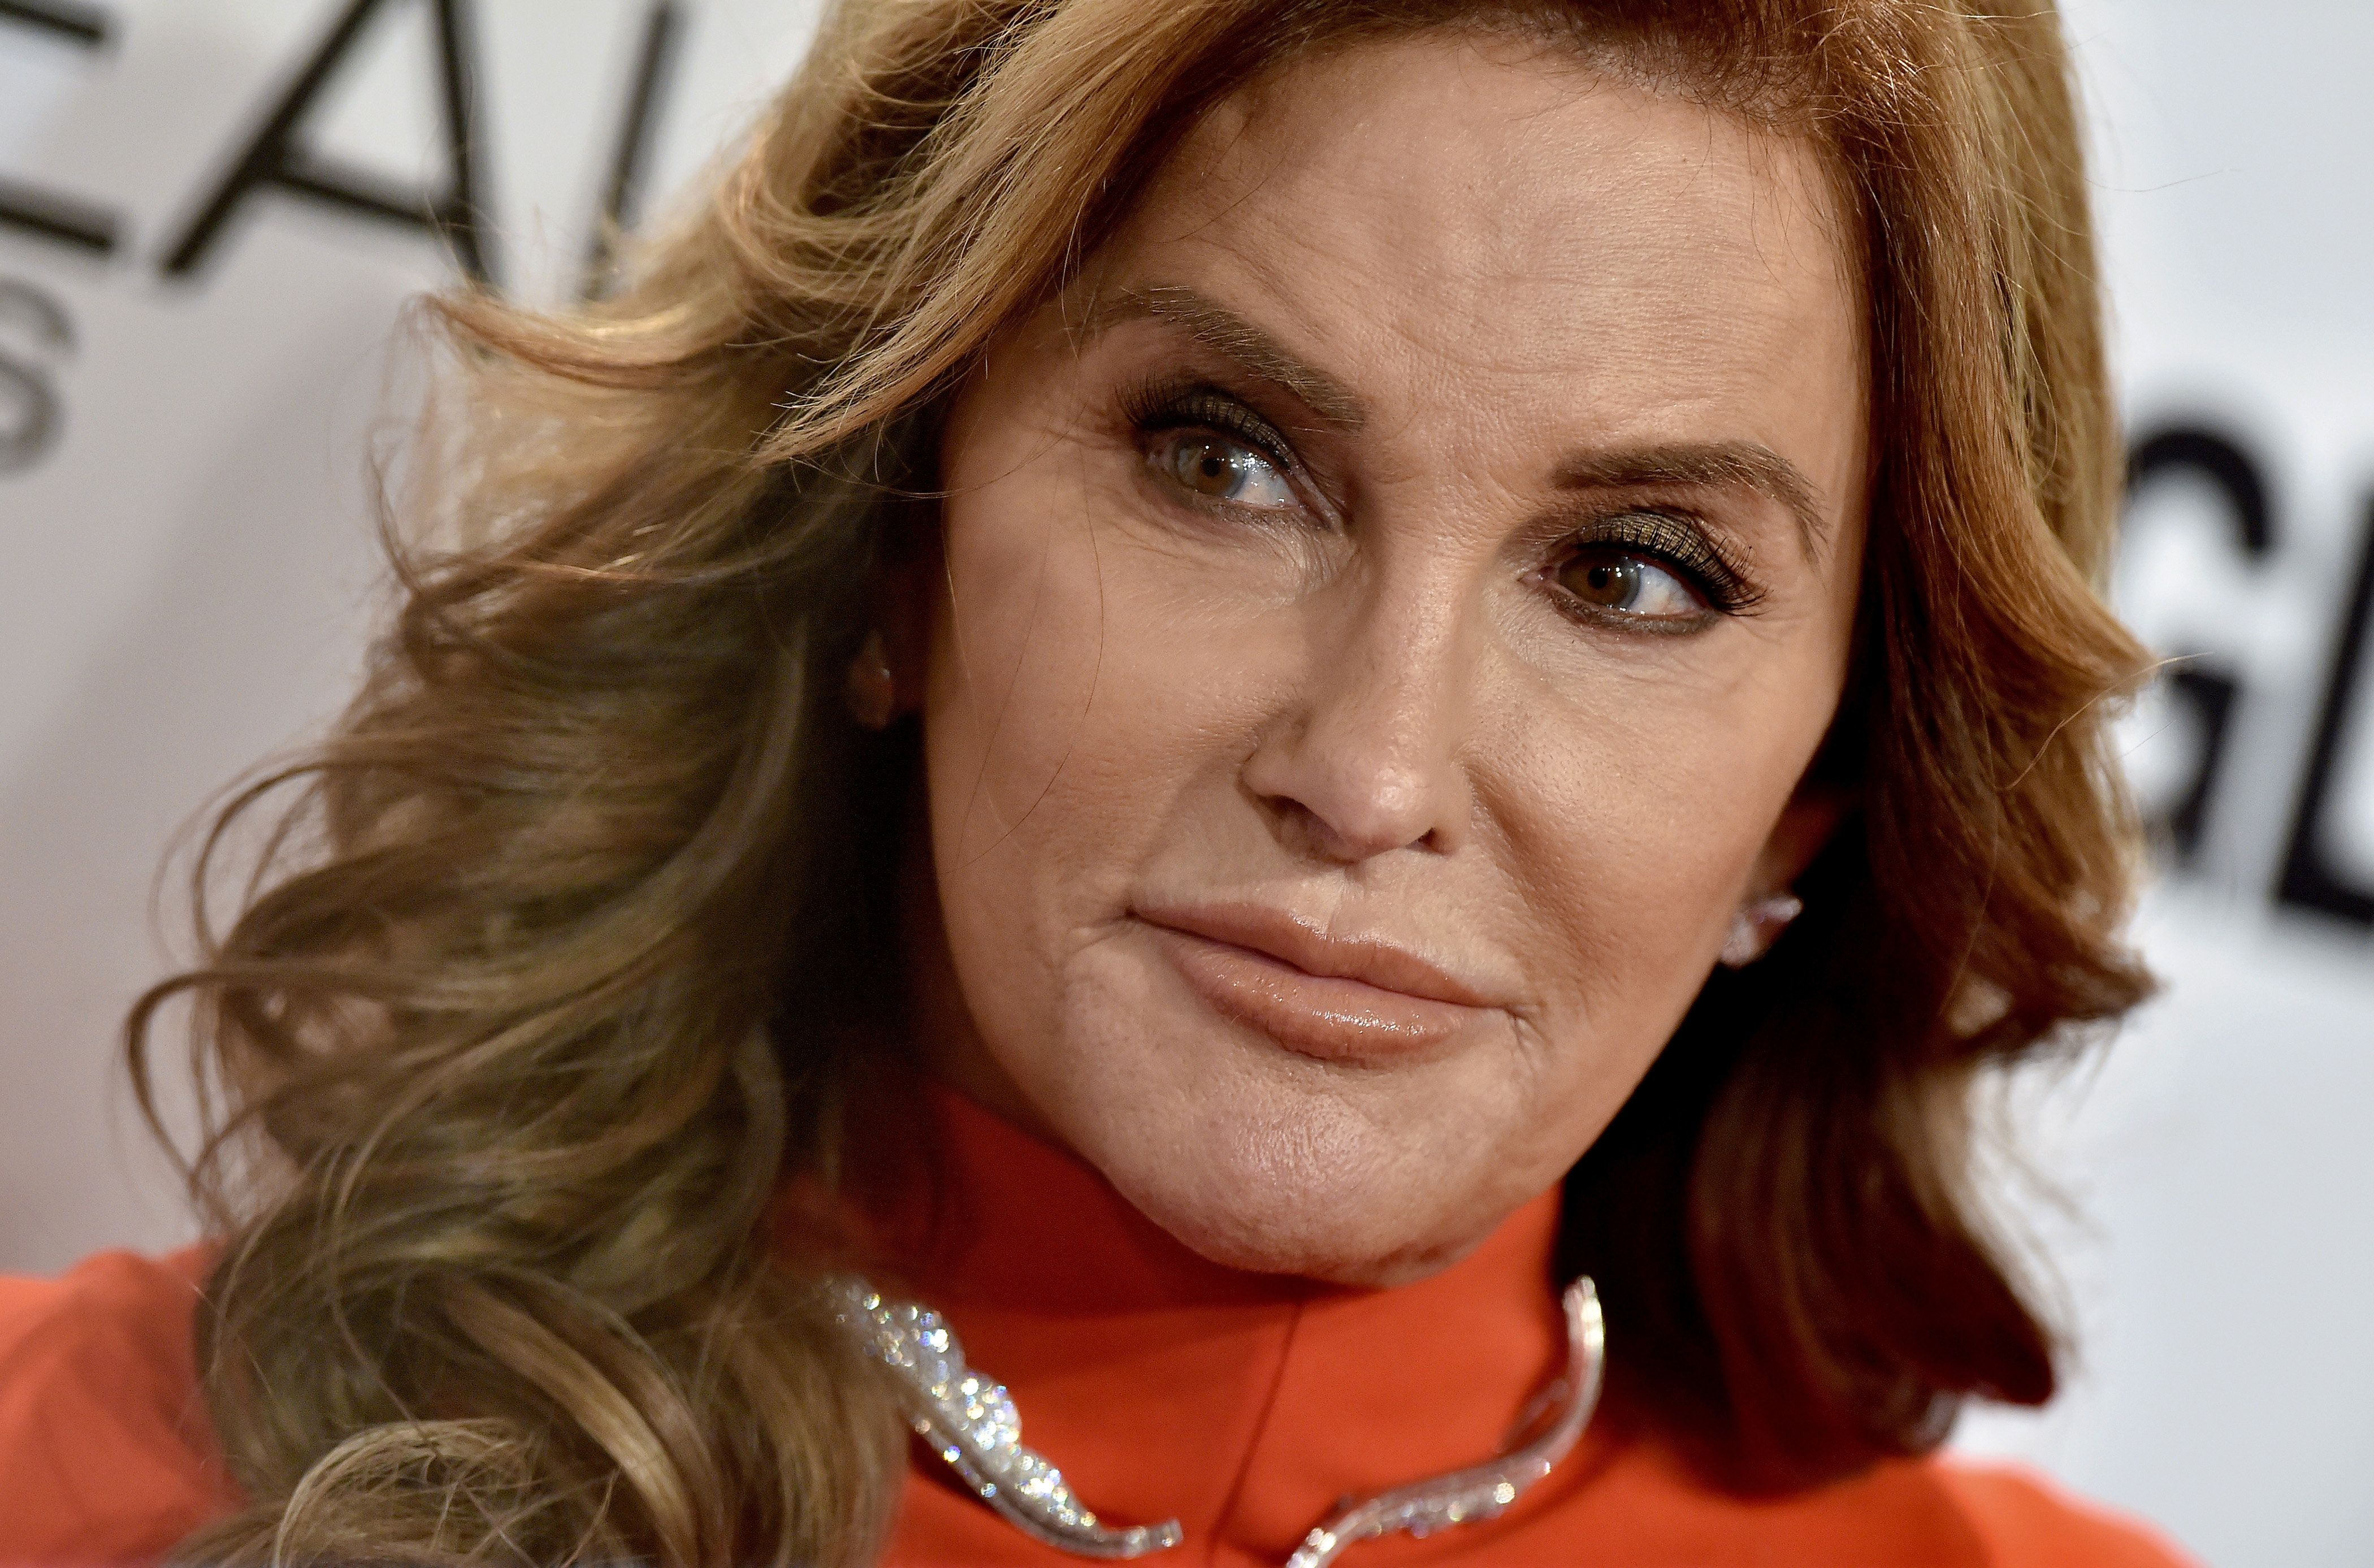 Jenner, 67, has become a bonafide trans icon since her first interview with Diane Sawyer.